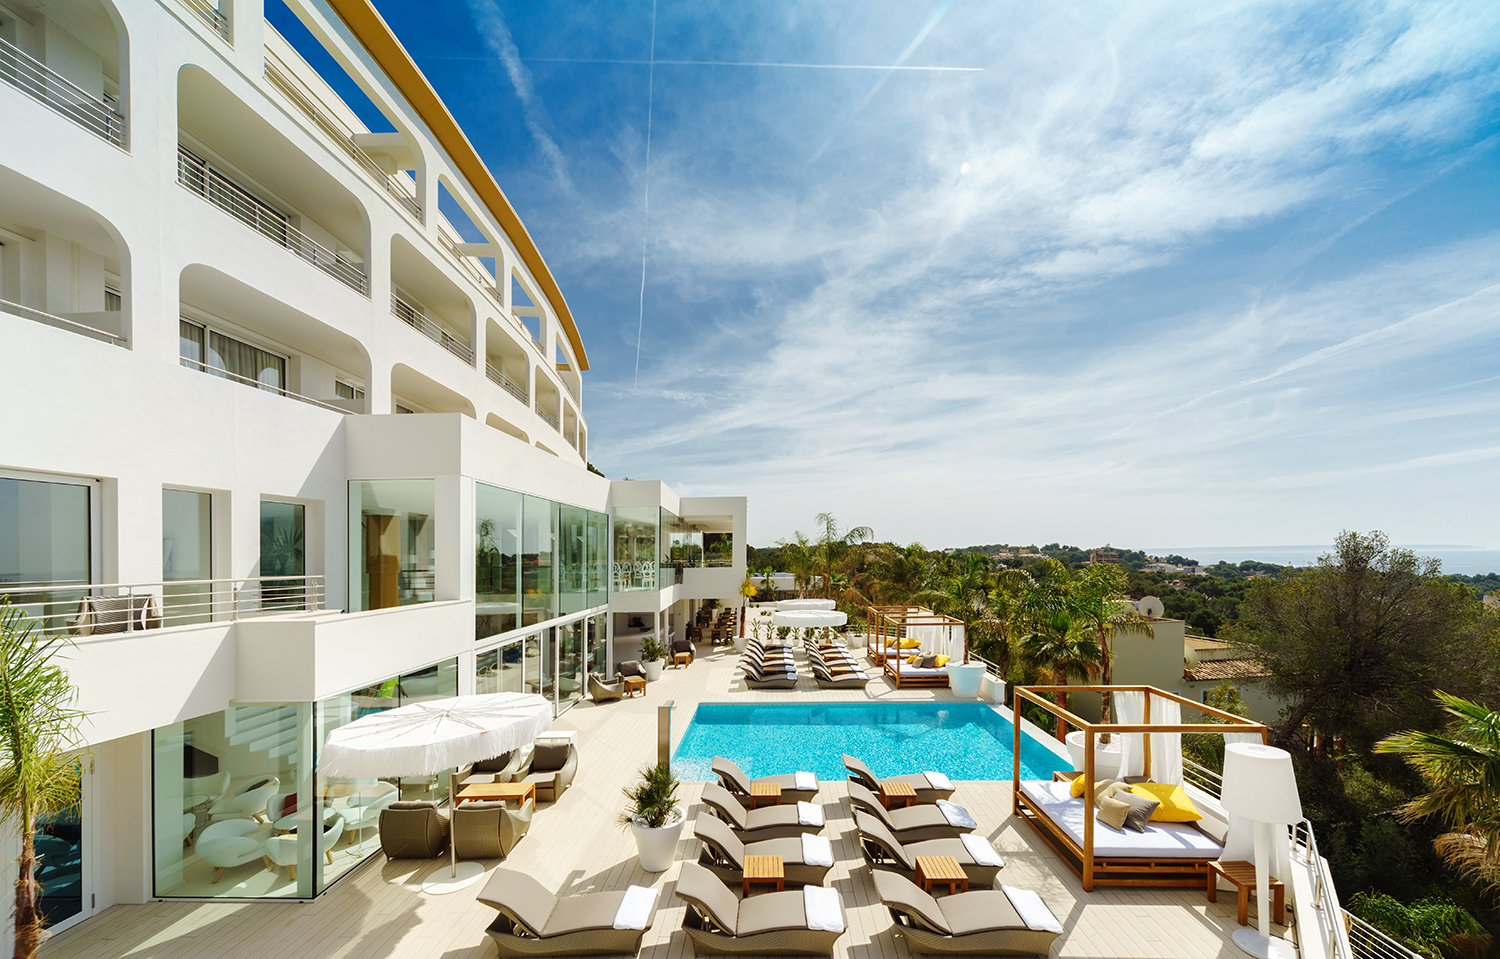 artsanchez-architecture-interior-design-photography-video-hospitality-hotel-portals-hills-calvia-mallorca-spain-1.jpg